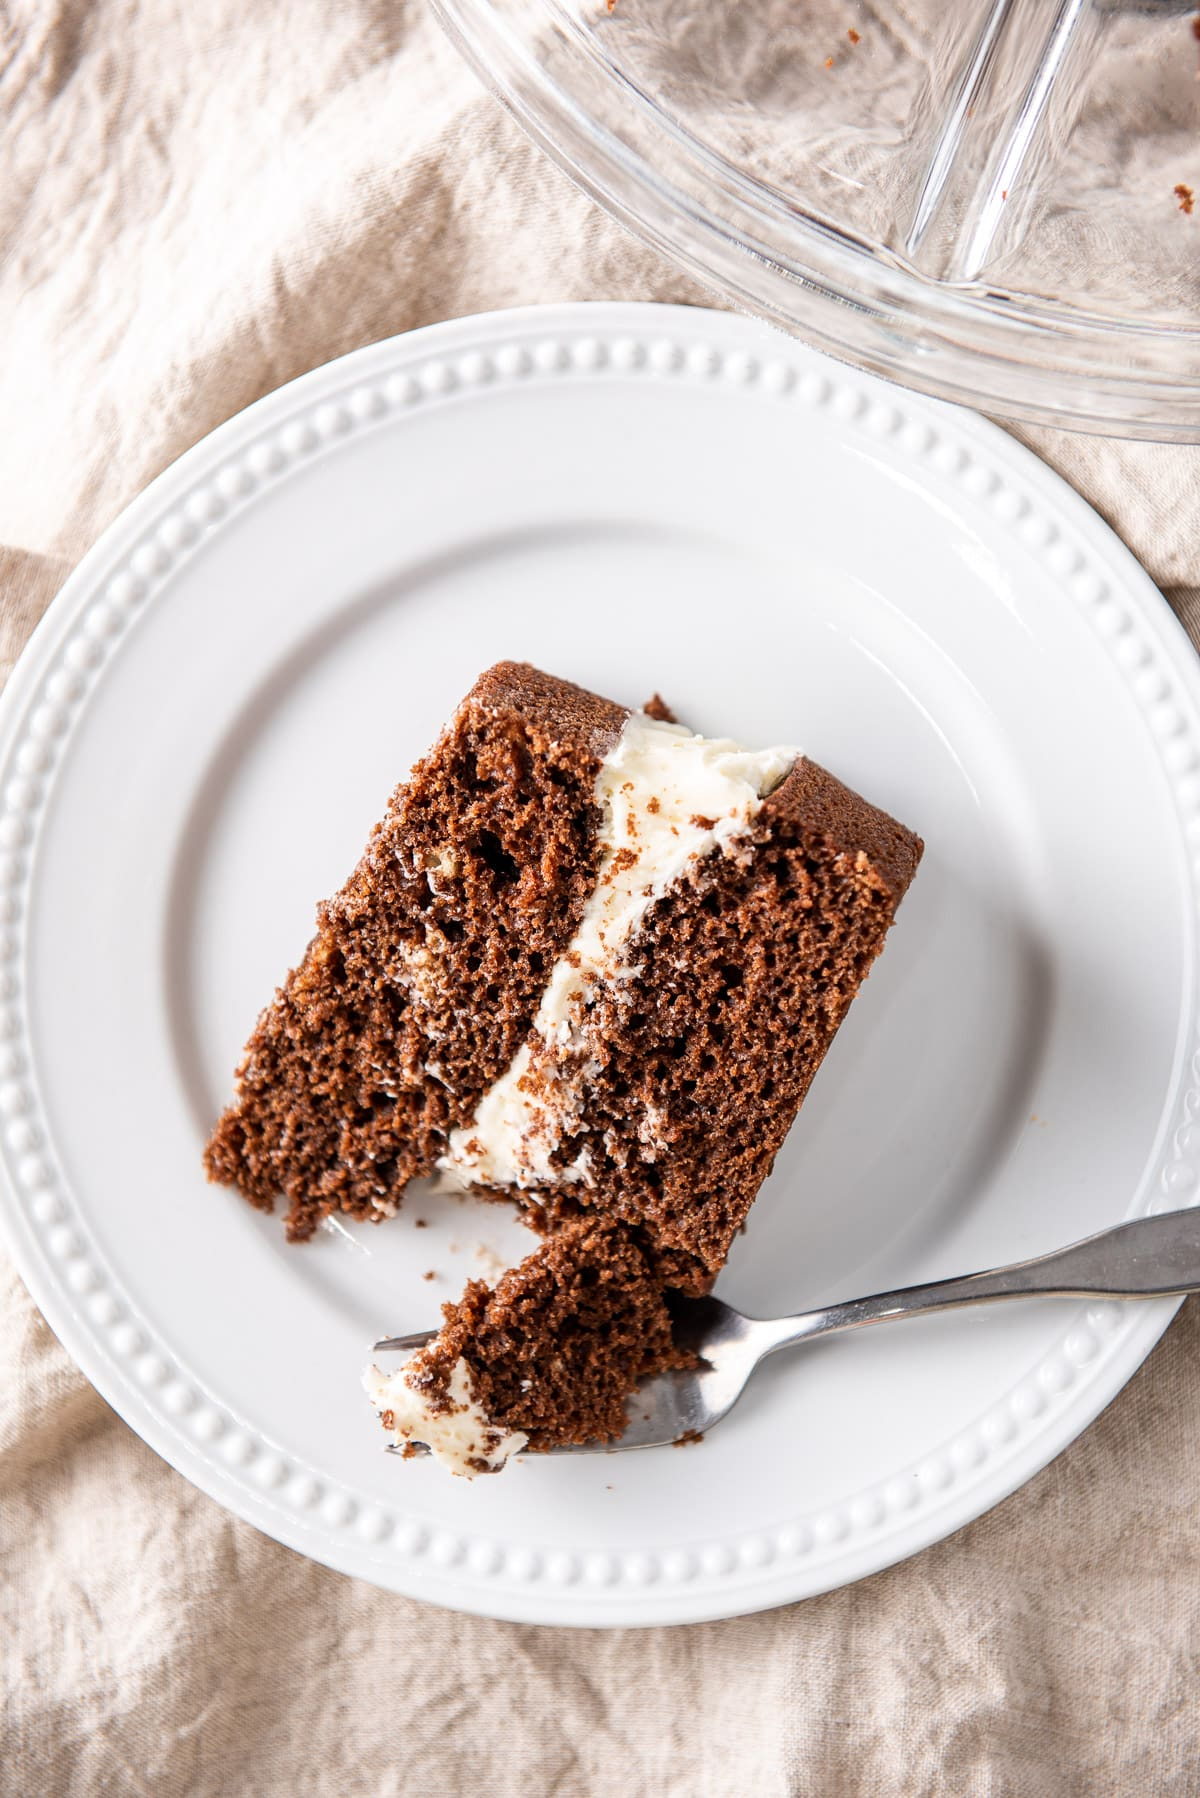 Overhead view of a white plate with a layered chocolate cake. There is a fork with a piece of cake on it